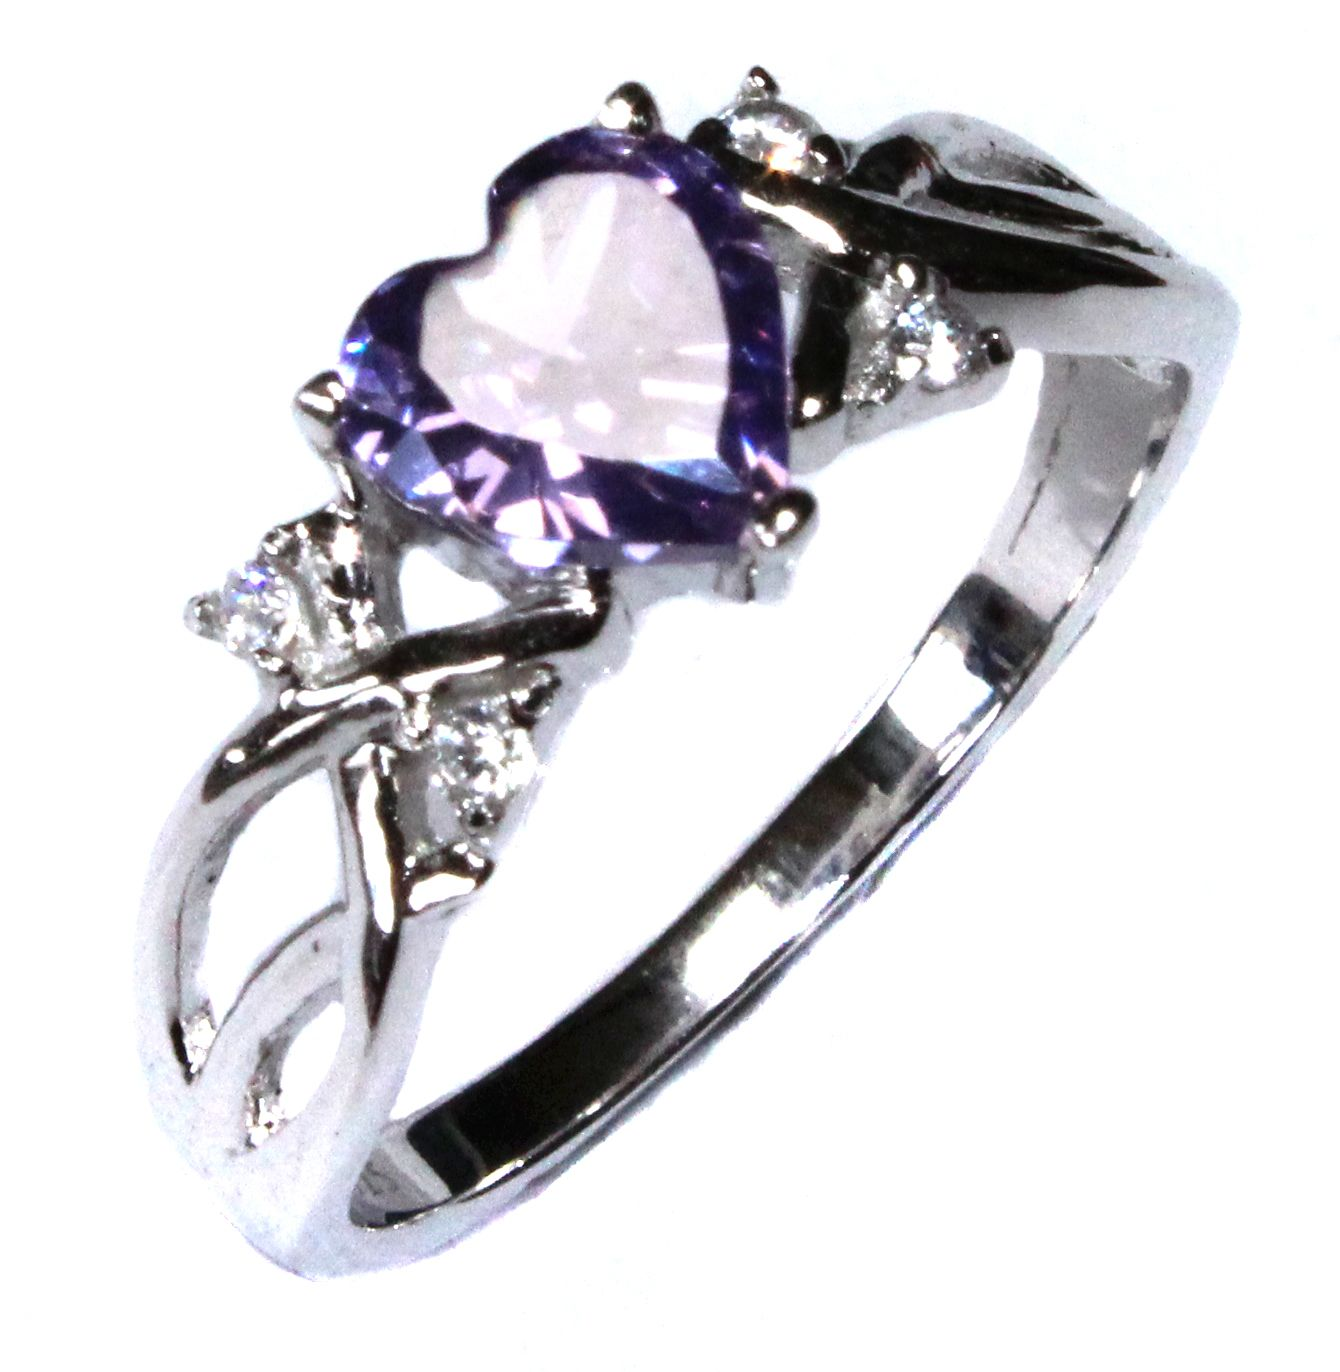 Amethyst (purple) Heart Shaped Promise Ring